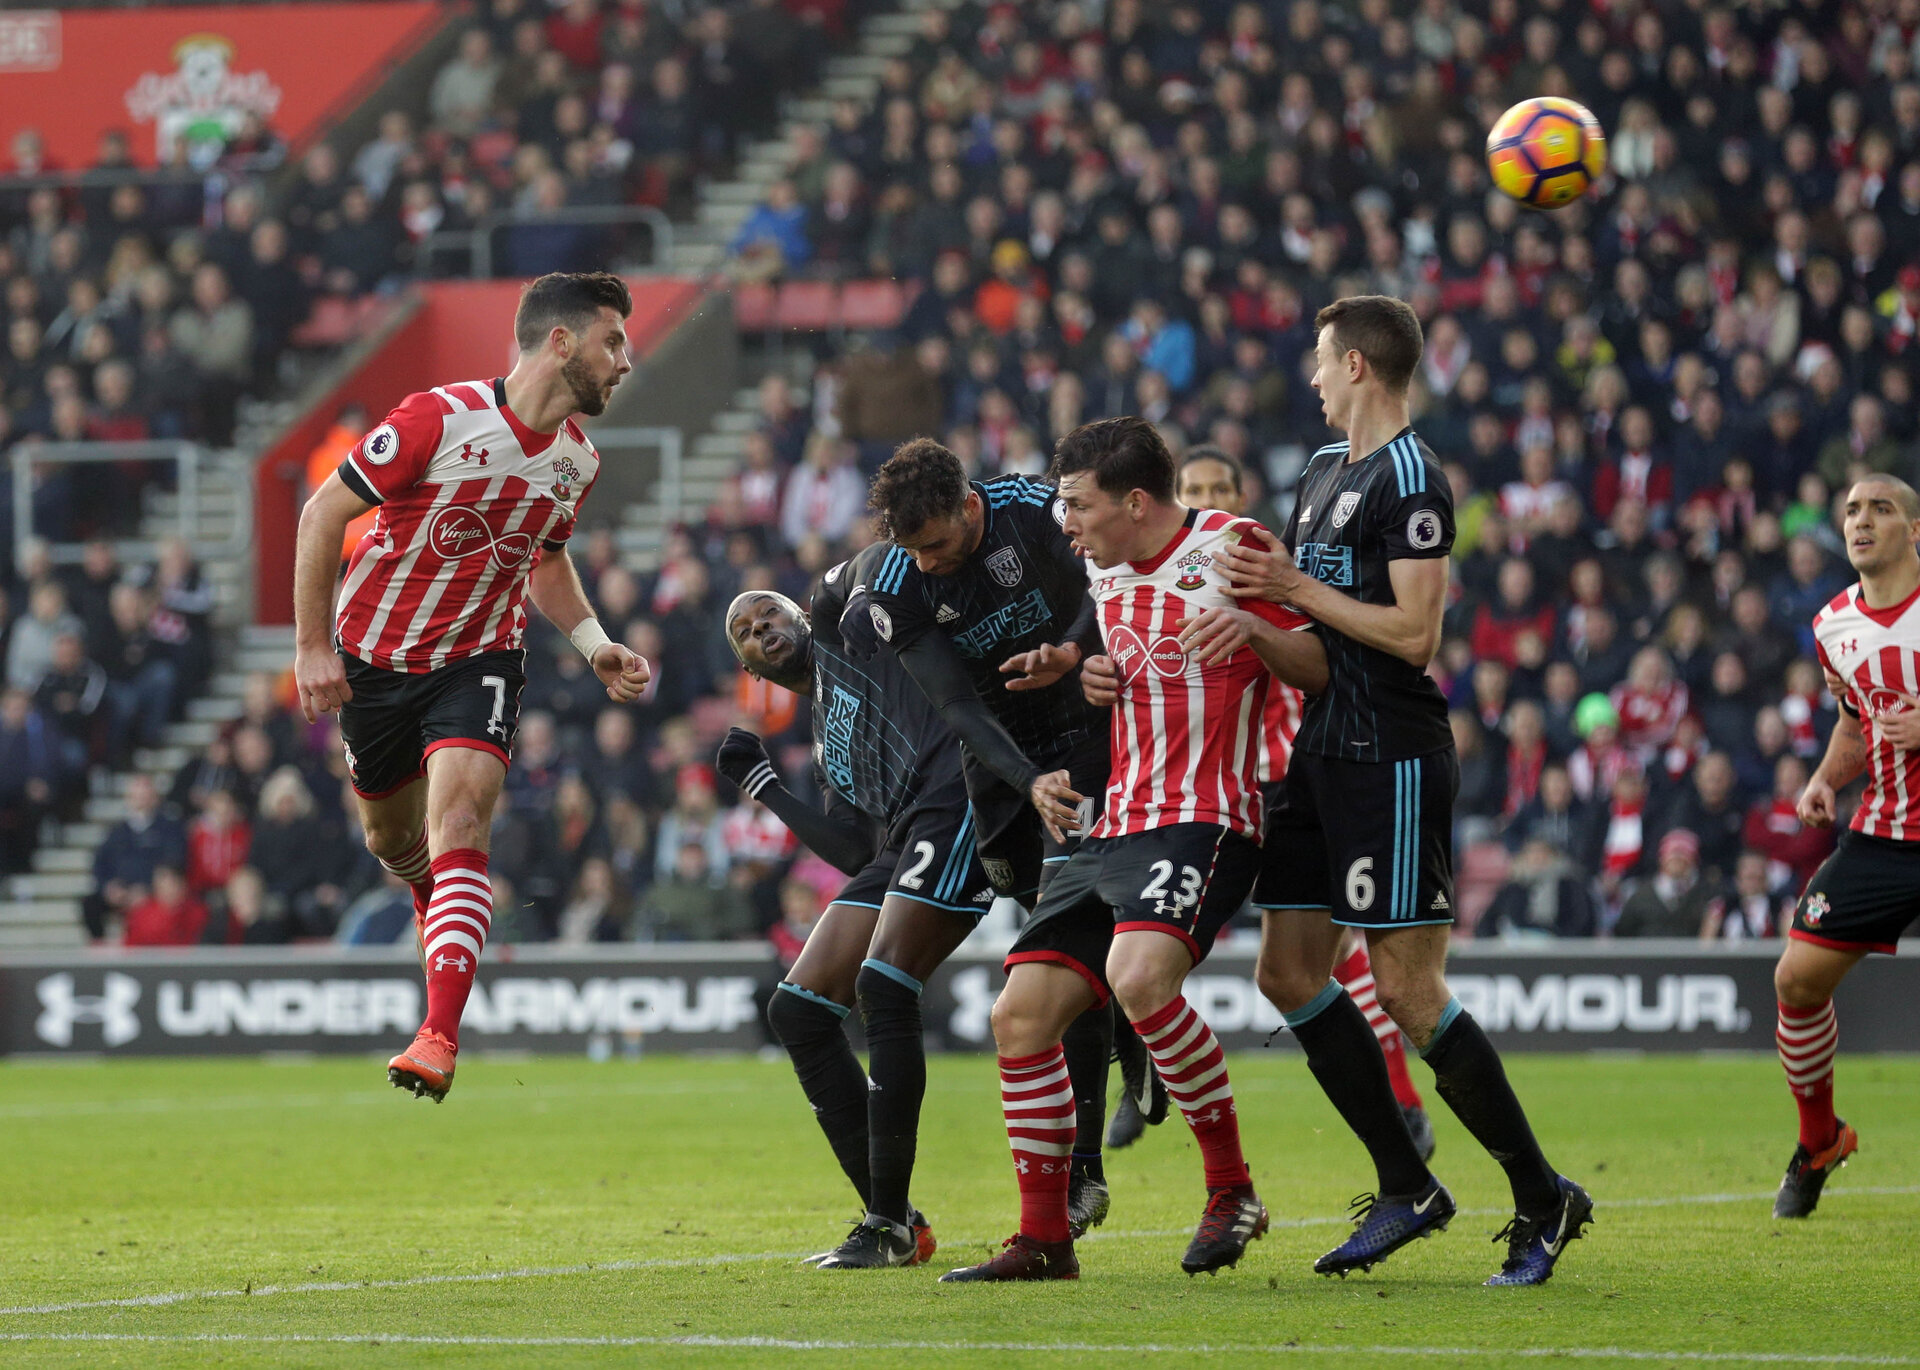 Shane Long (Southampton) makes it 1-0 during the Premier League match between Southampton and West Bromwich Albion at St Mary's Stadium, Southampton, England on 31 December 2016.